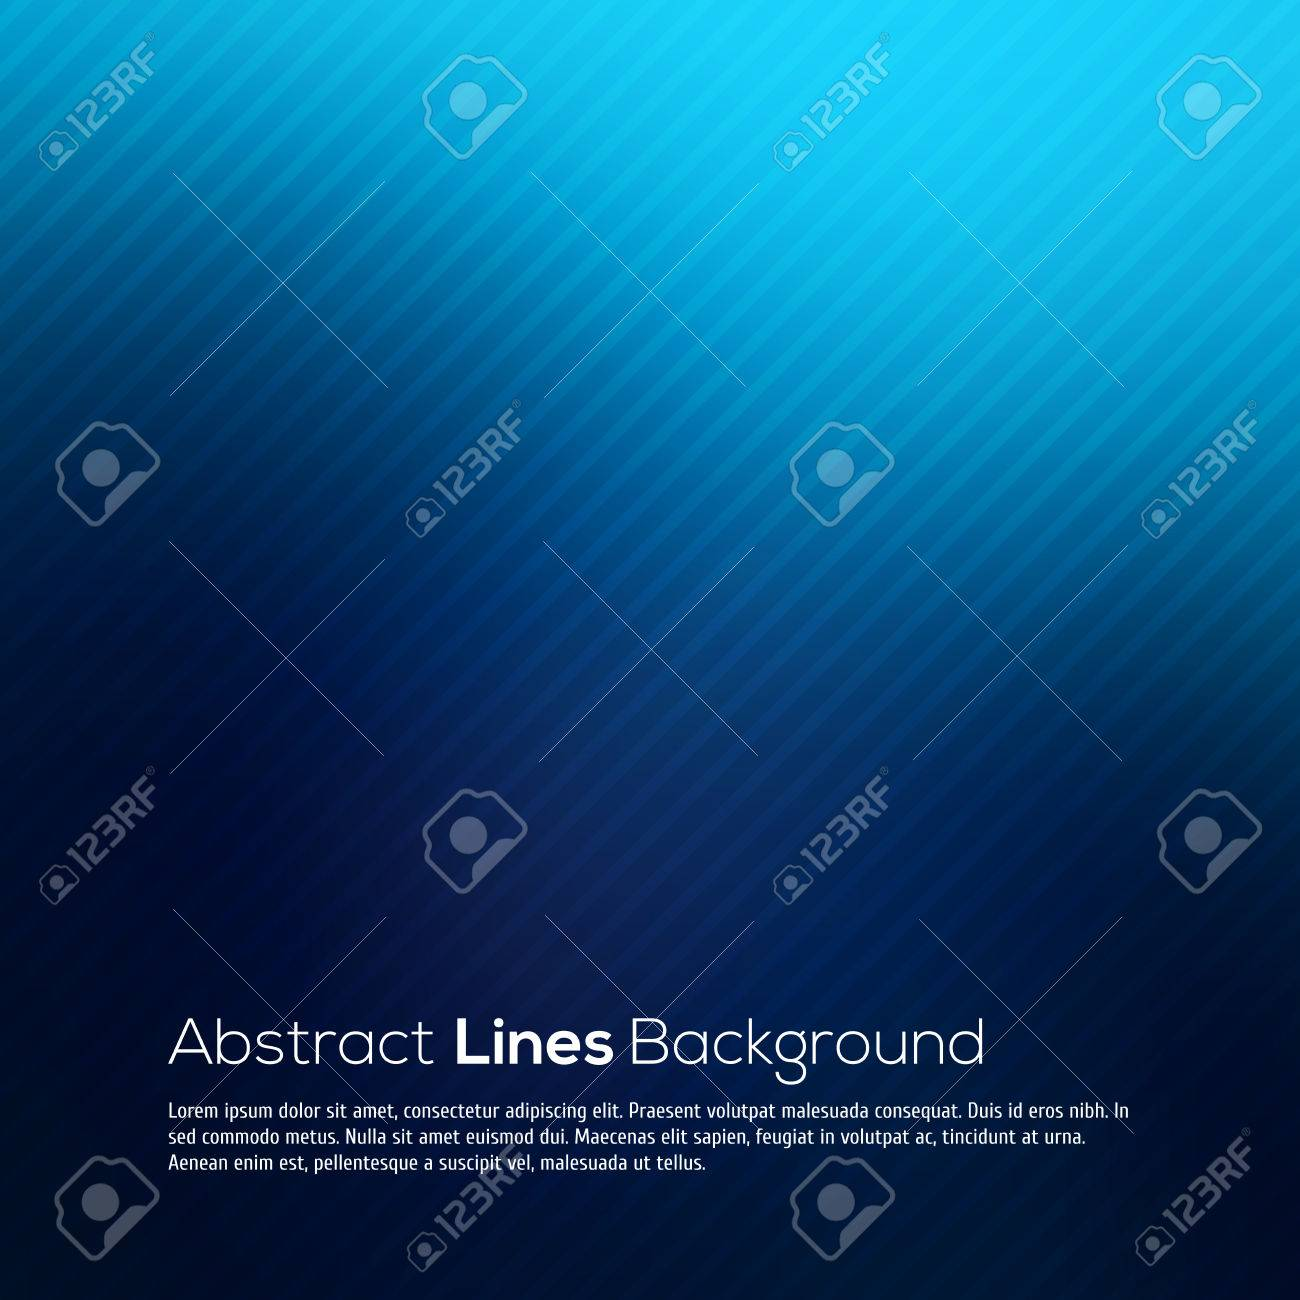 Blue abstract lines business vector background for your design - 30444064